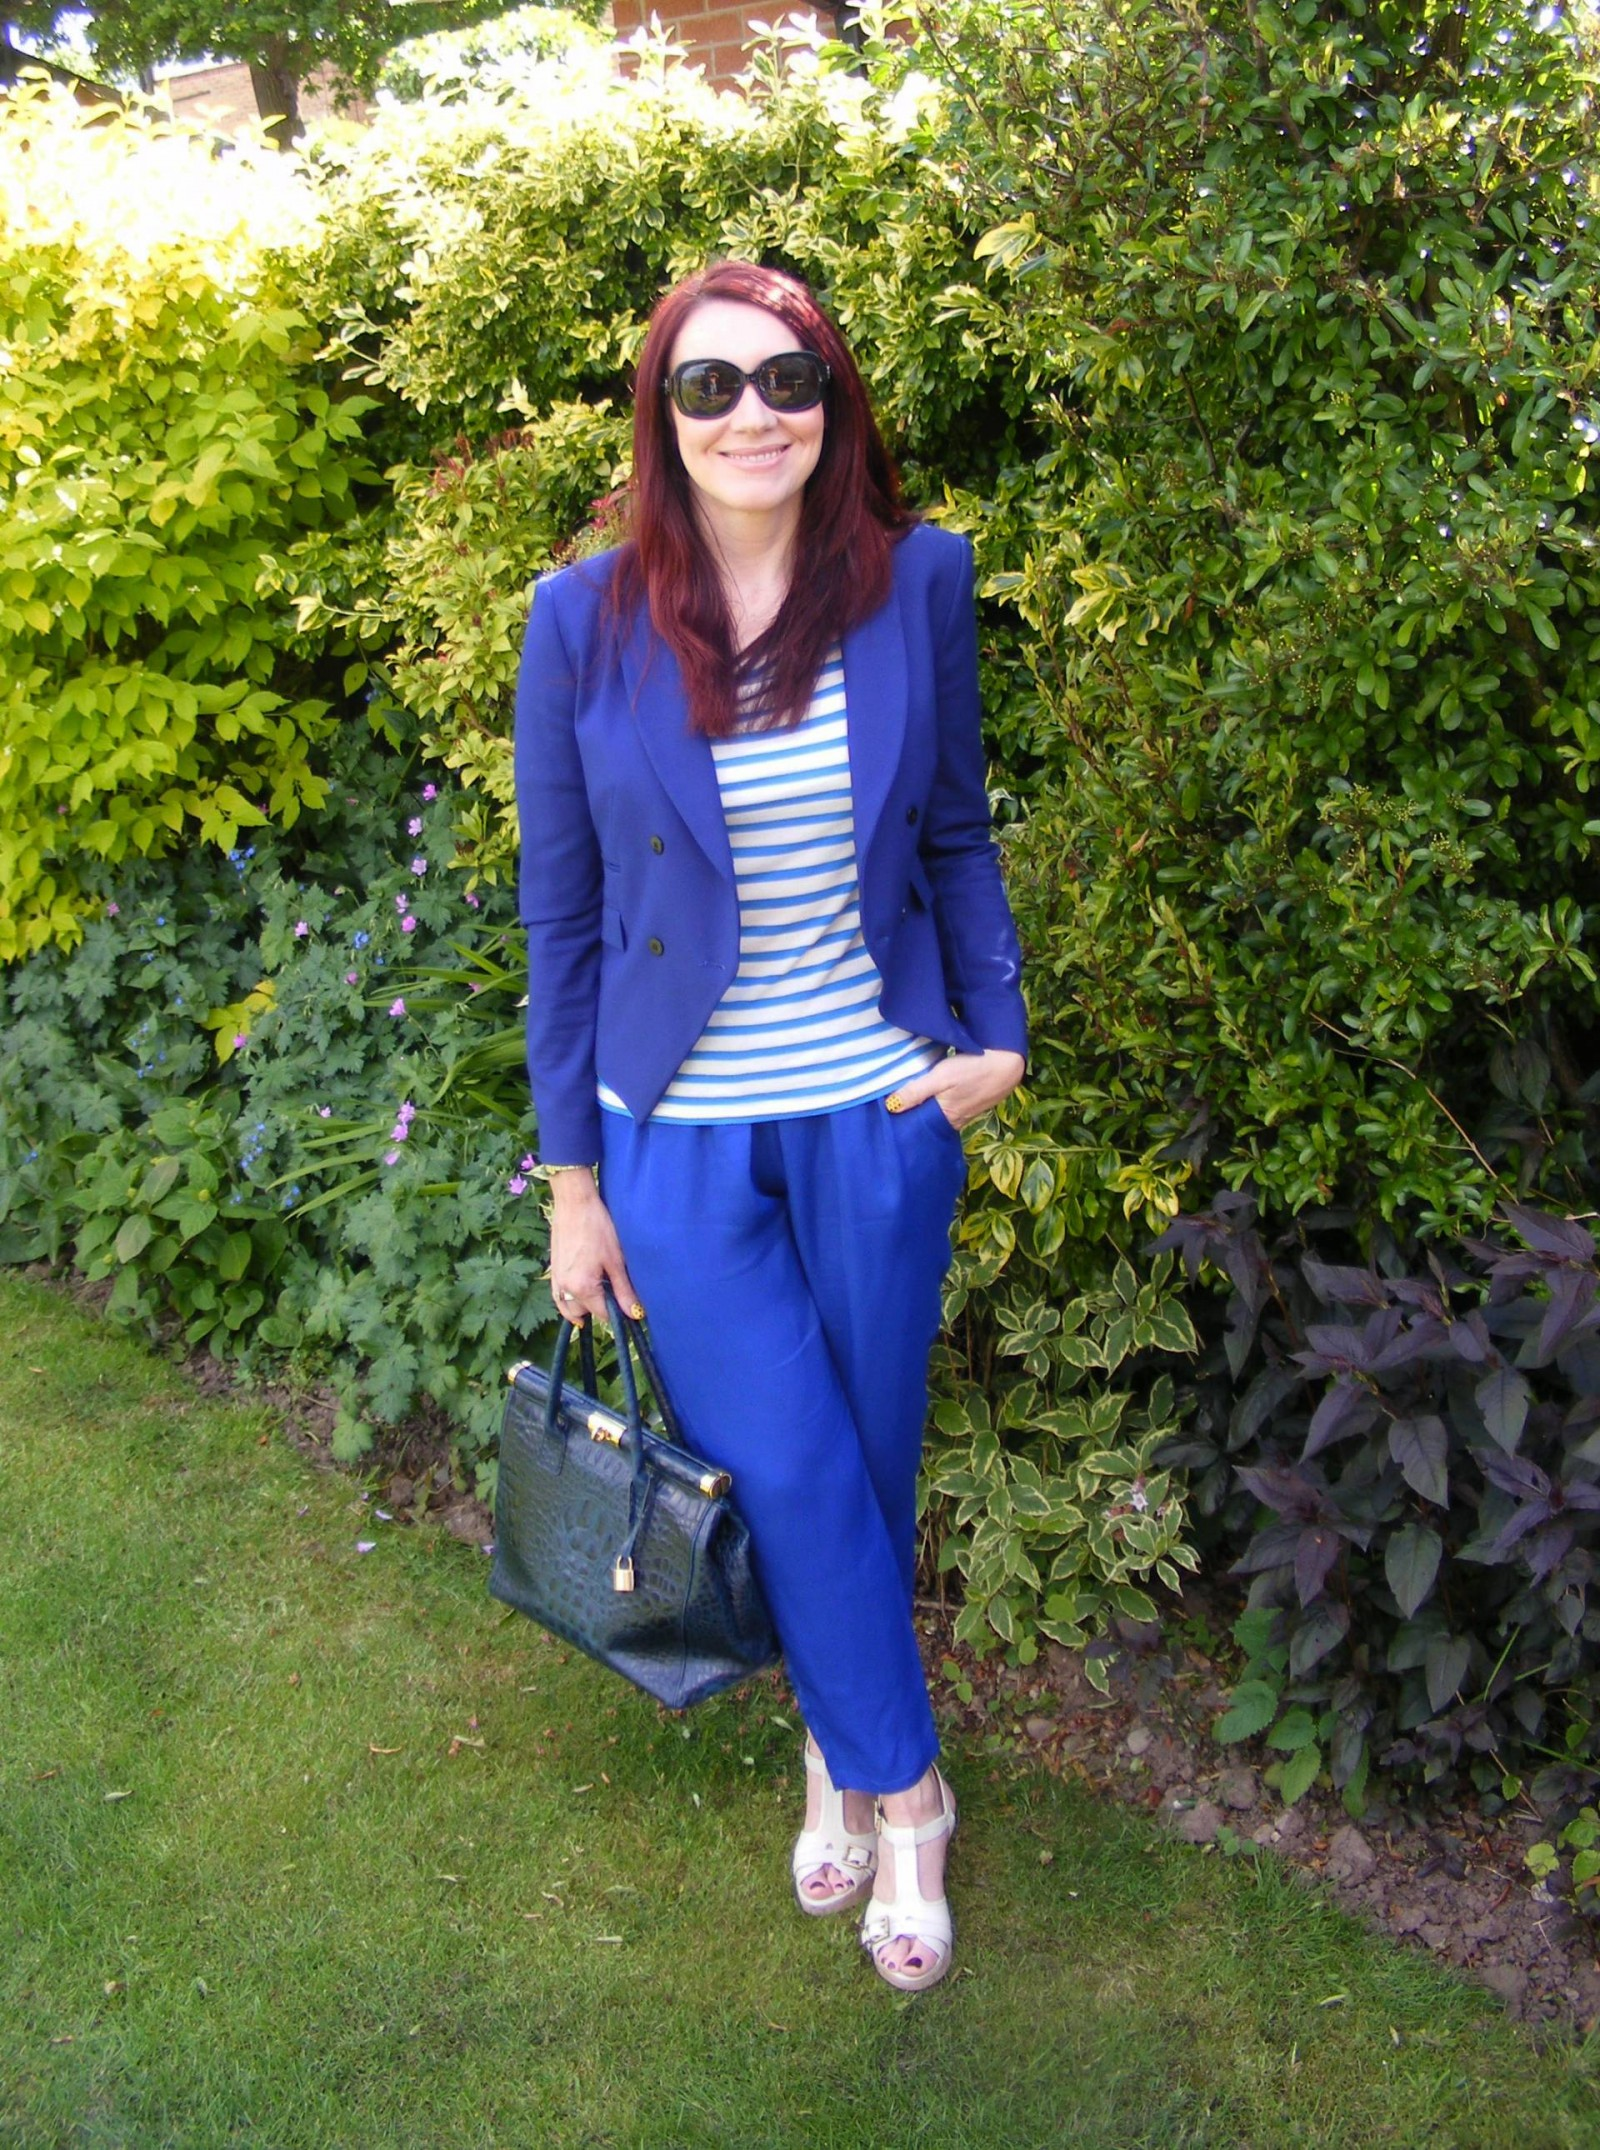 Blue Zara jacket and Mary portas trousers